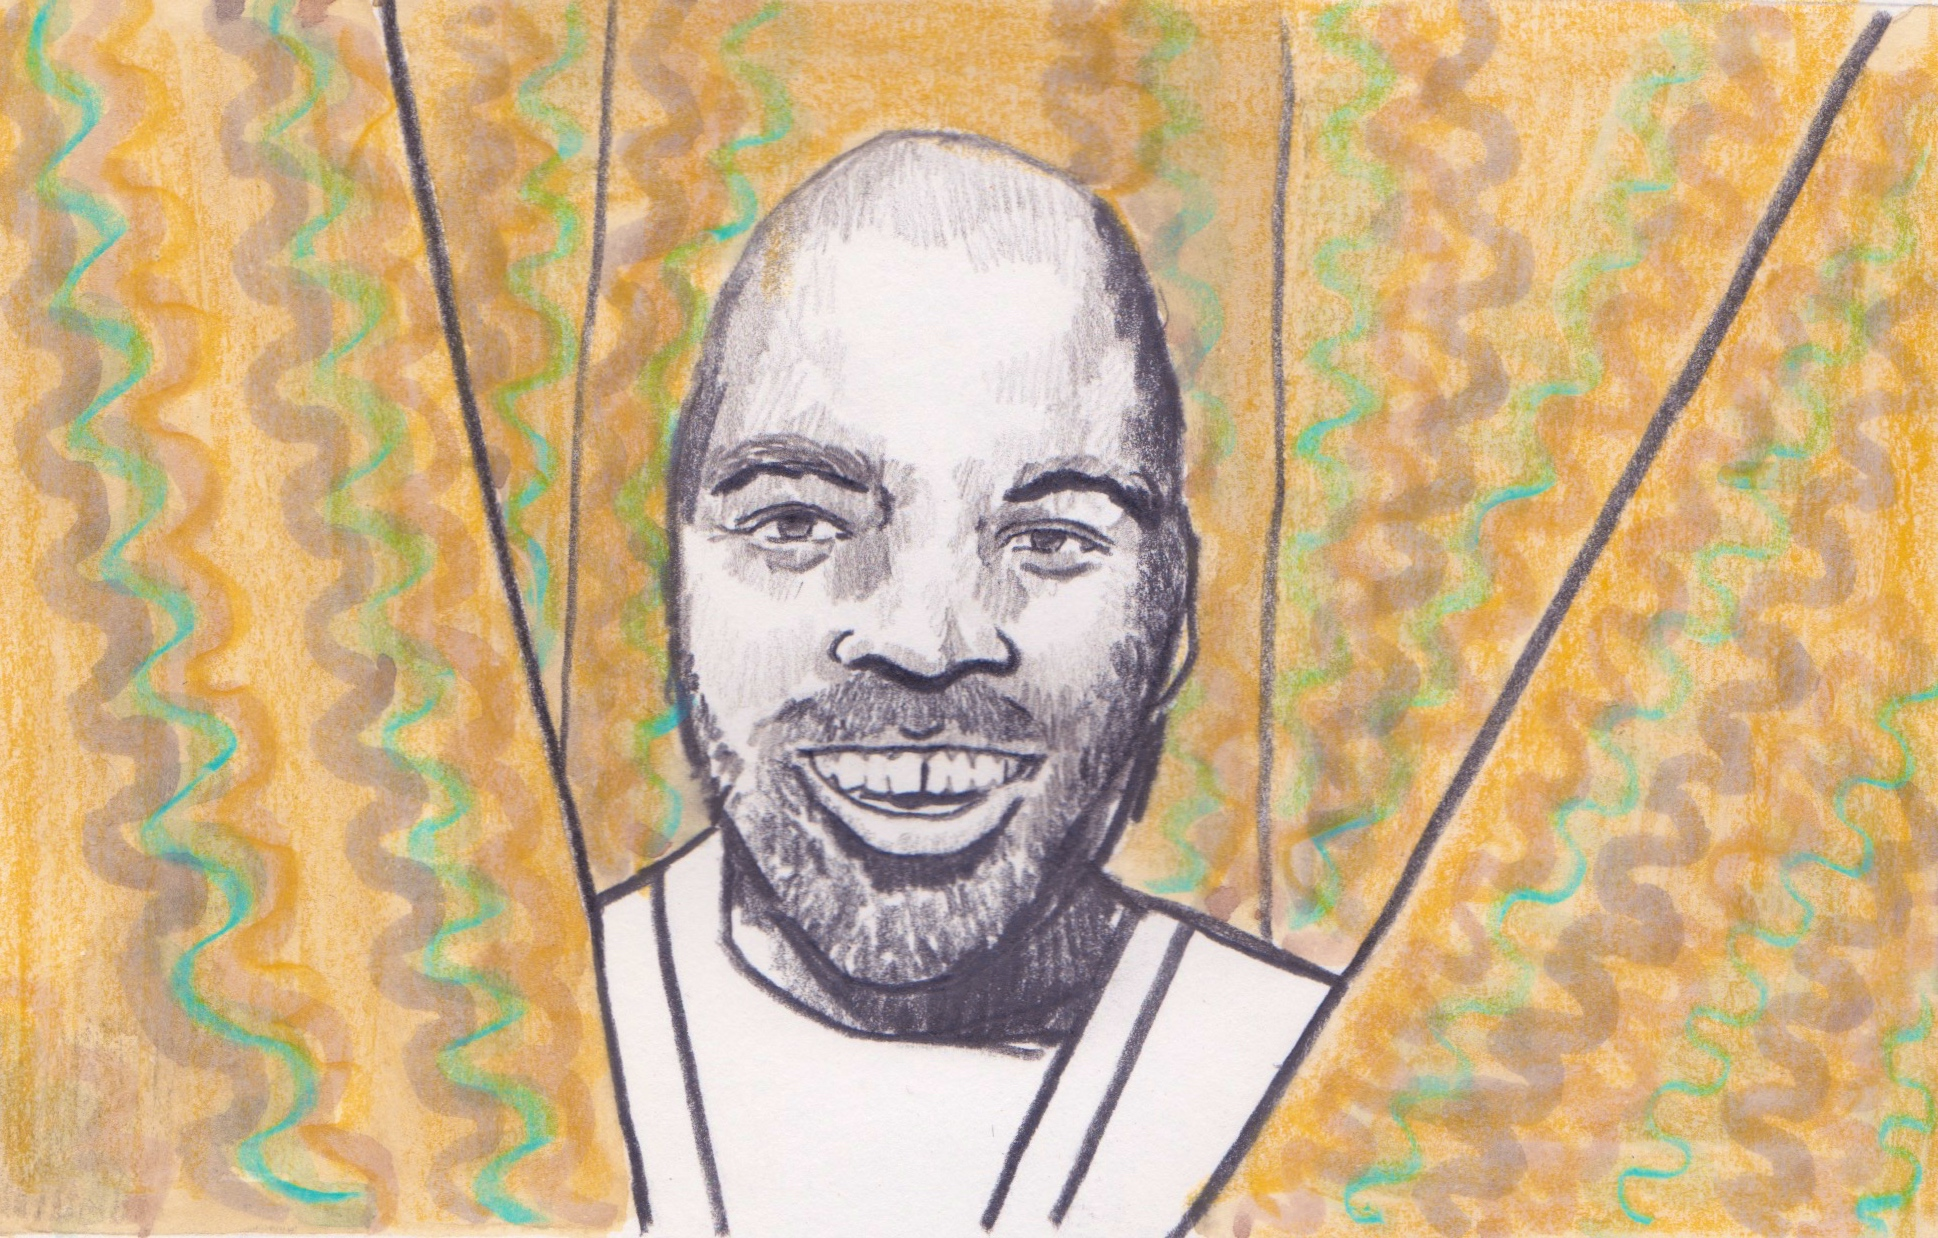 26/05/15 Nigerian fashion designer Duro Olowu is fast emerging as a fashion heavyweight. The profile of Africa's fashion scene is rising and designers are establishing themselves in the West.